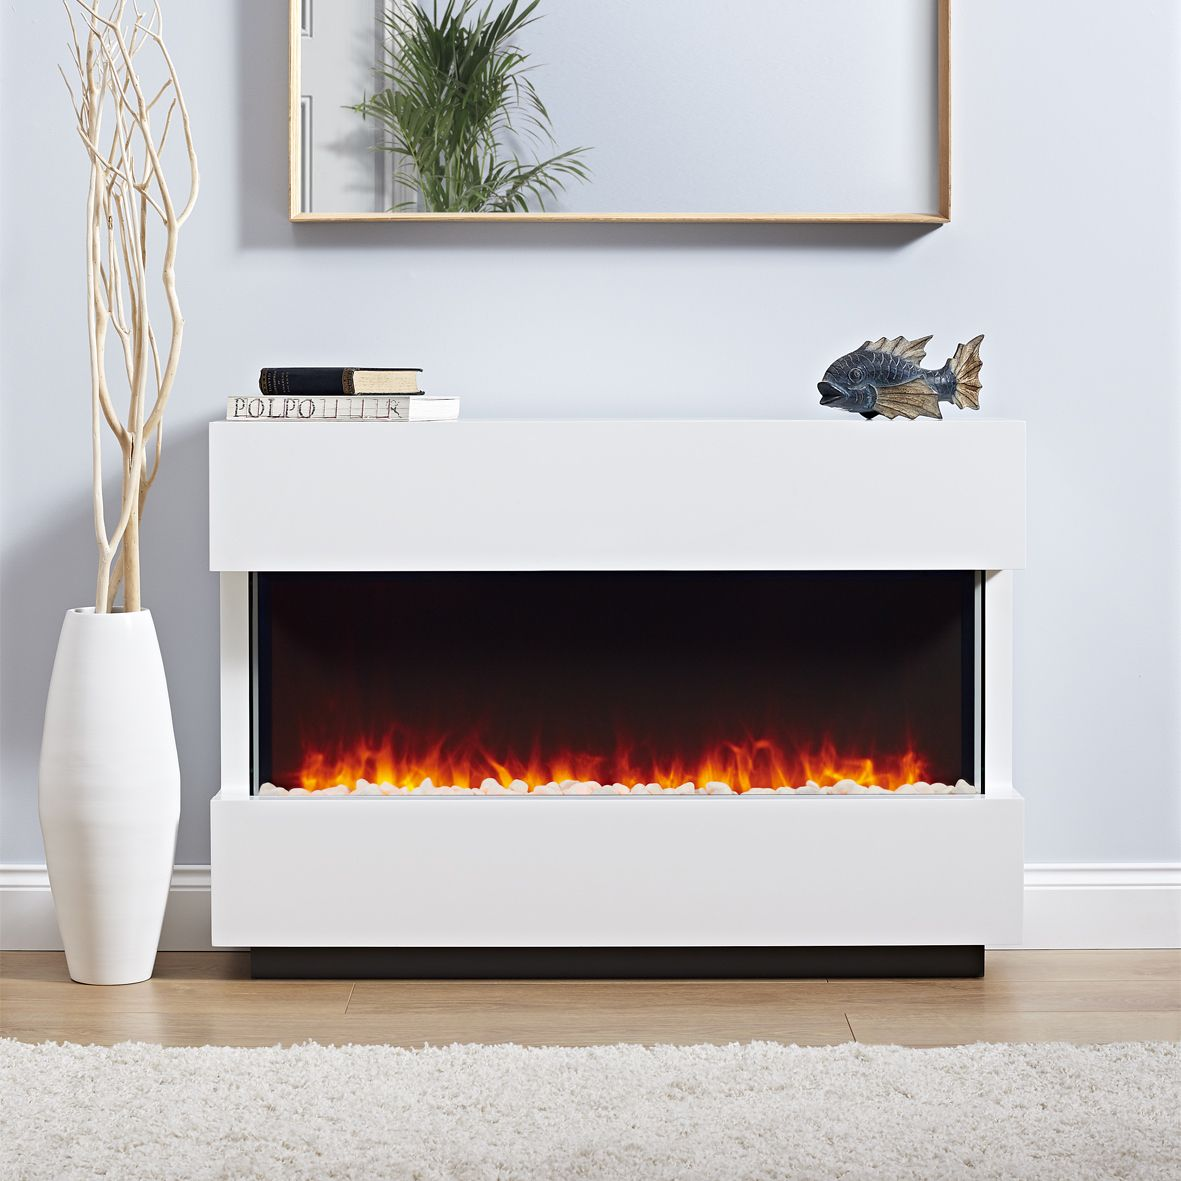 The Panoramic Complete Electric Fireplace Suite Is A Fully Assembled Electric Fire Suite This Contemp Electric Fireplace Fireplace Suites Electric Fire Suites